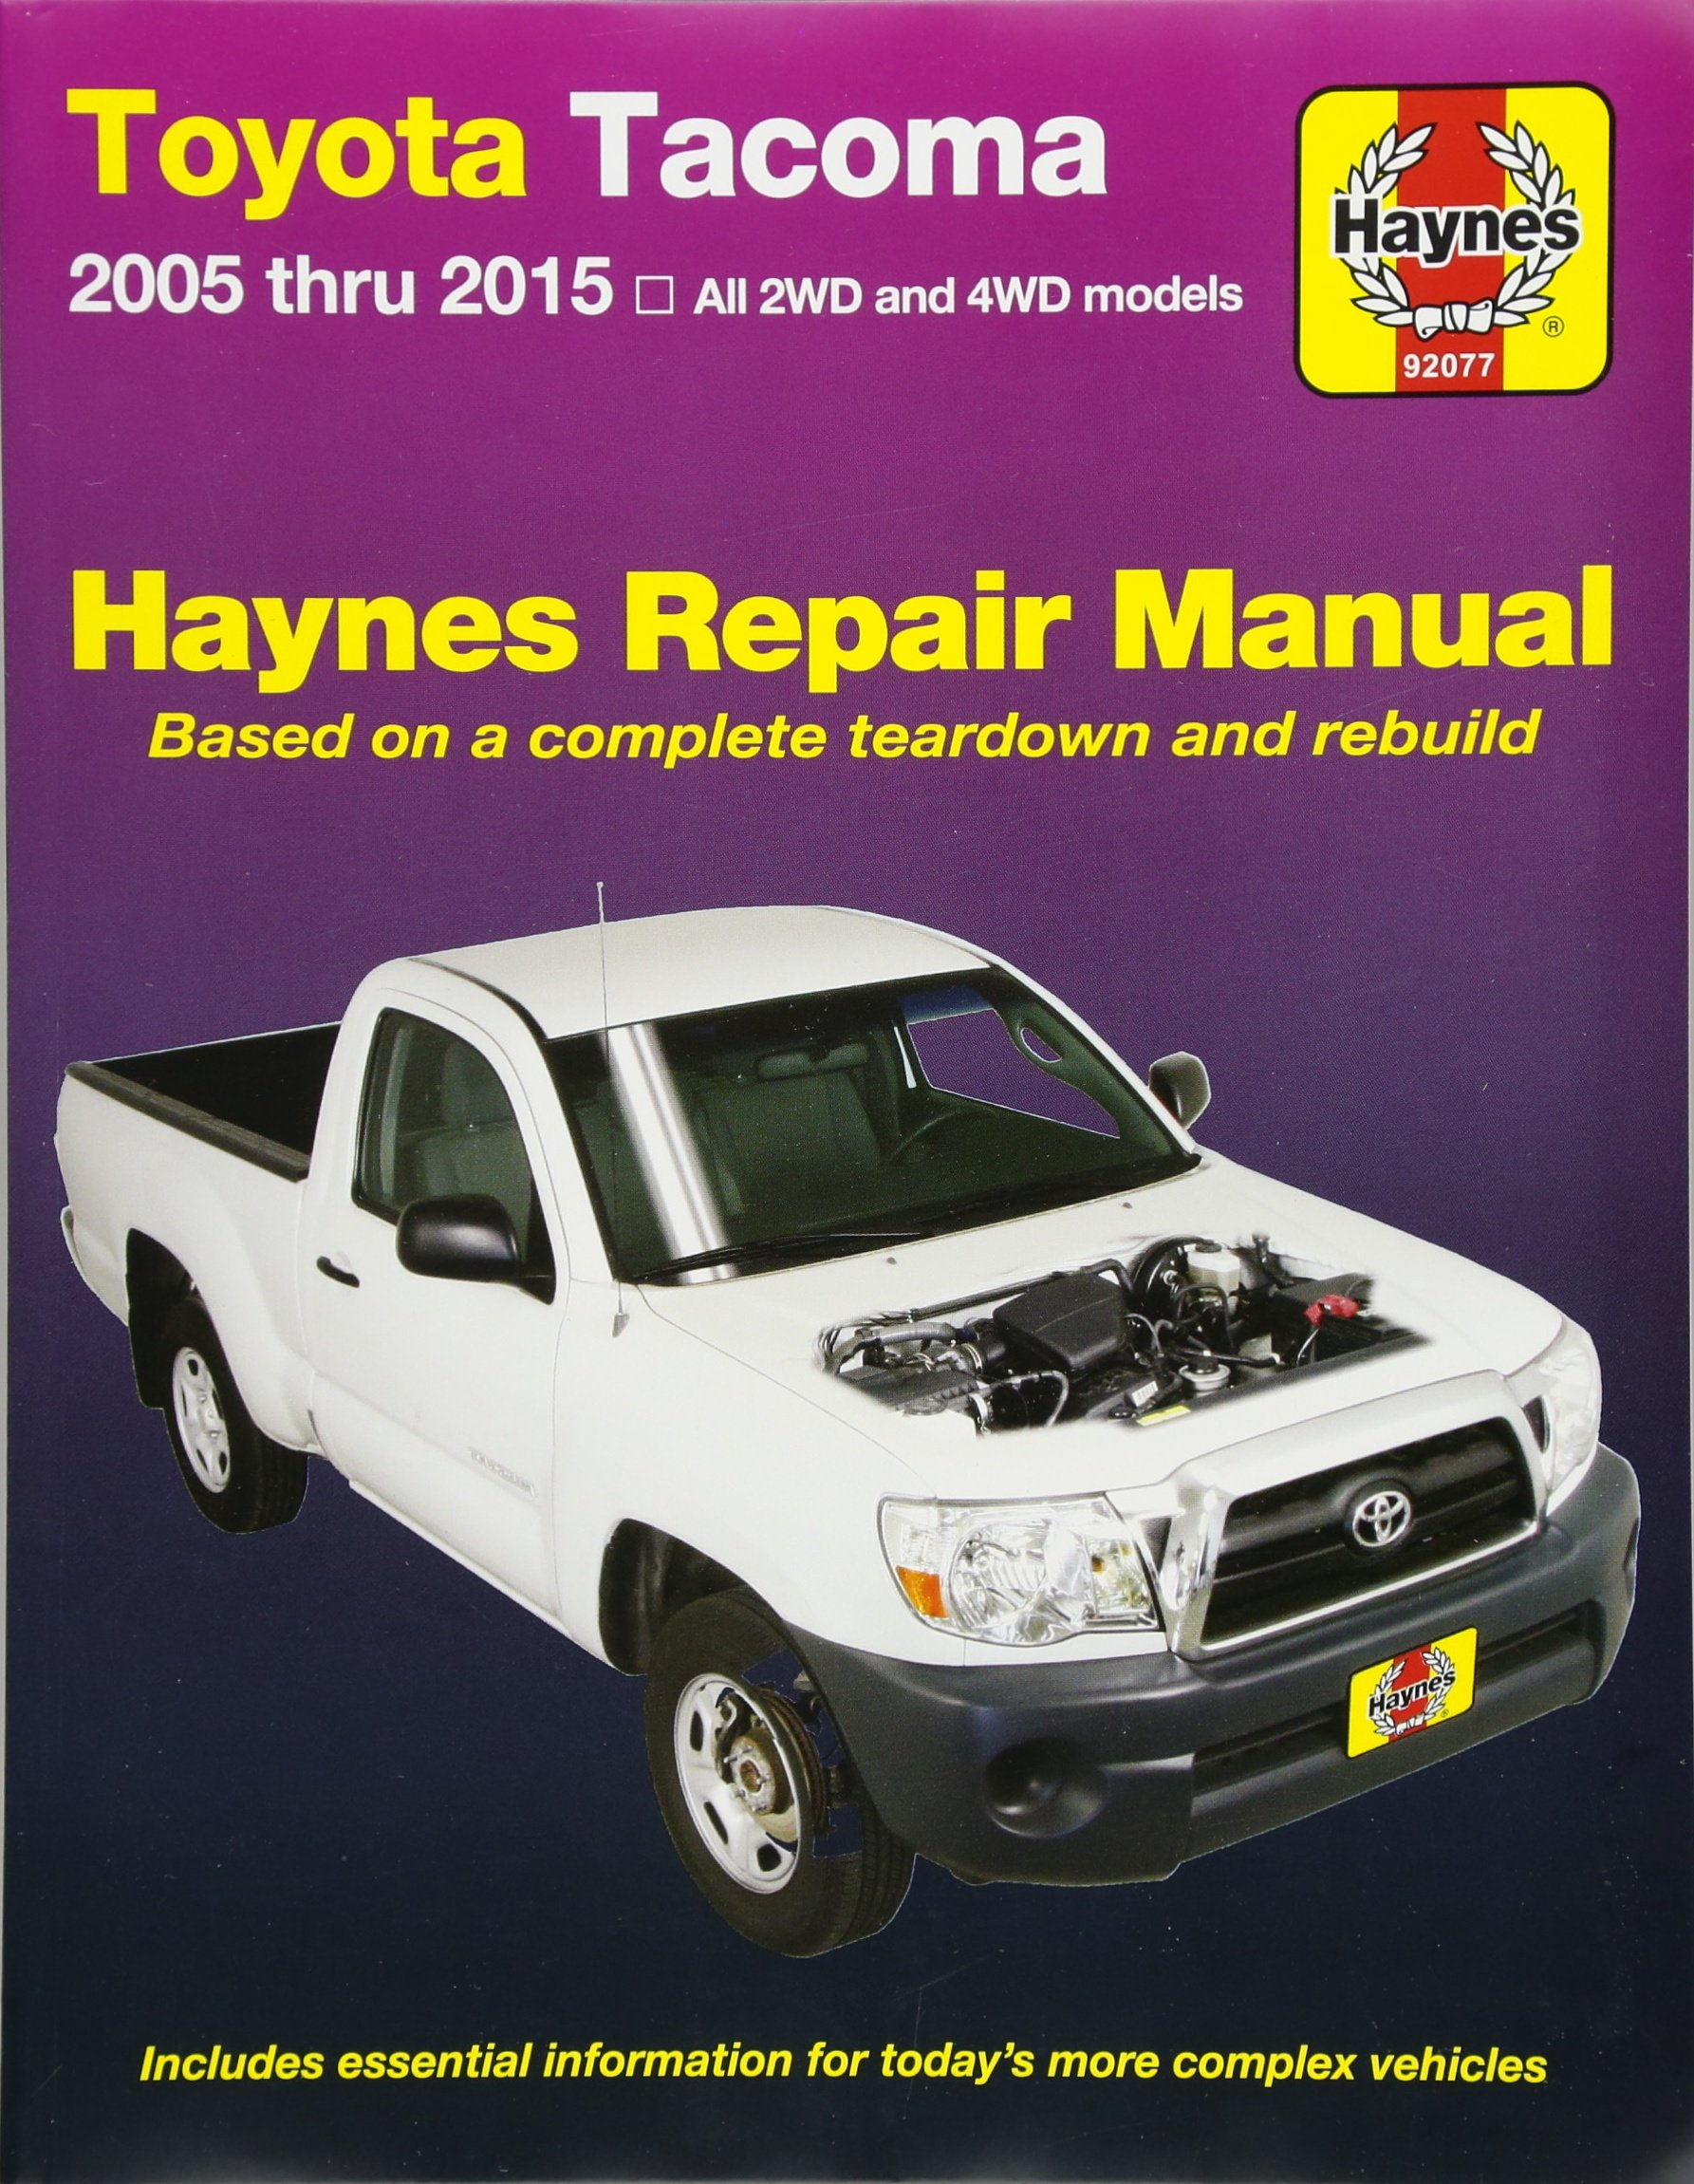 Toyota Tacoma: 2005 thru 2015 All 2WD and 4WD models (Haynes Repair Manual):  Editors of Haynes Manuals: 0038345920776: Amazon.com: Books